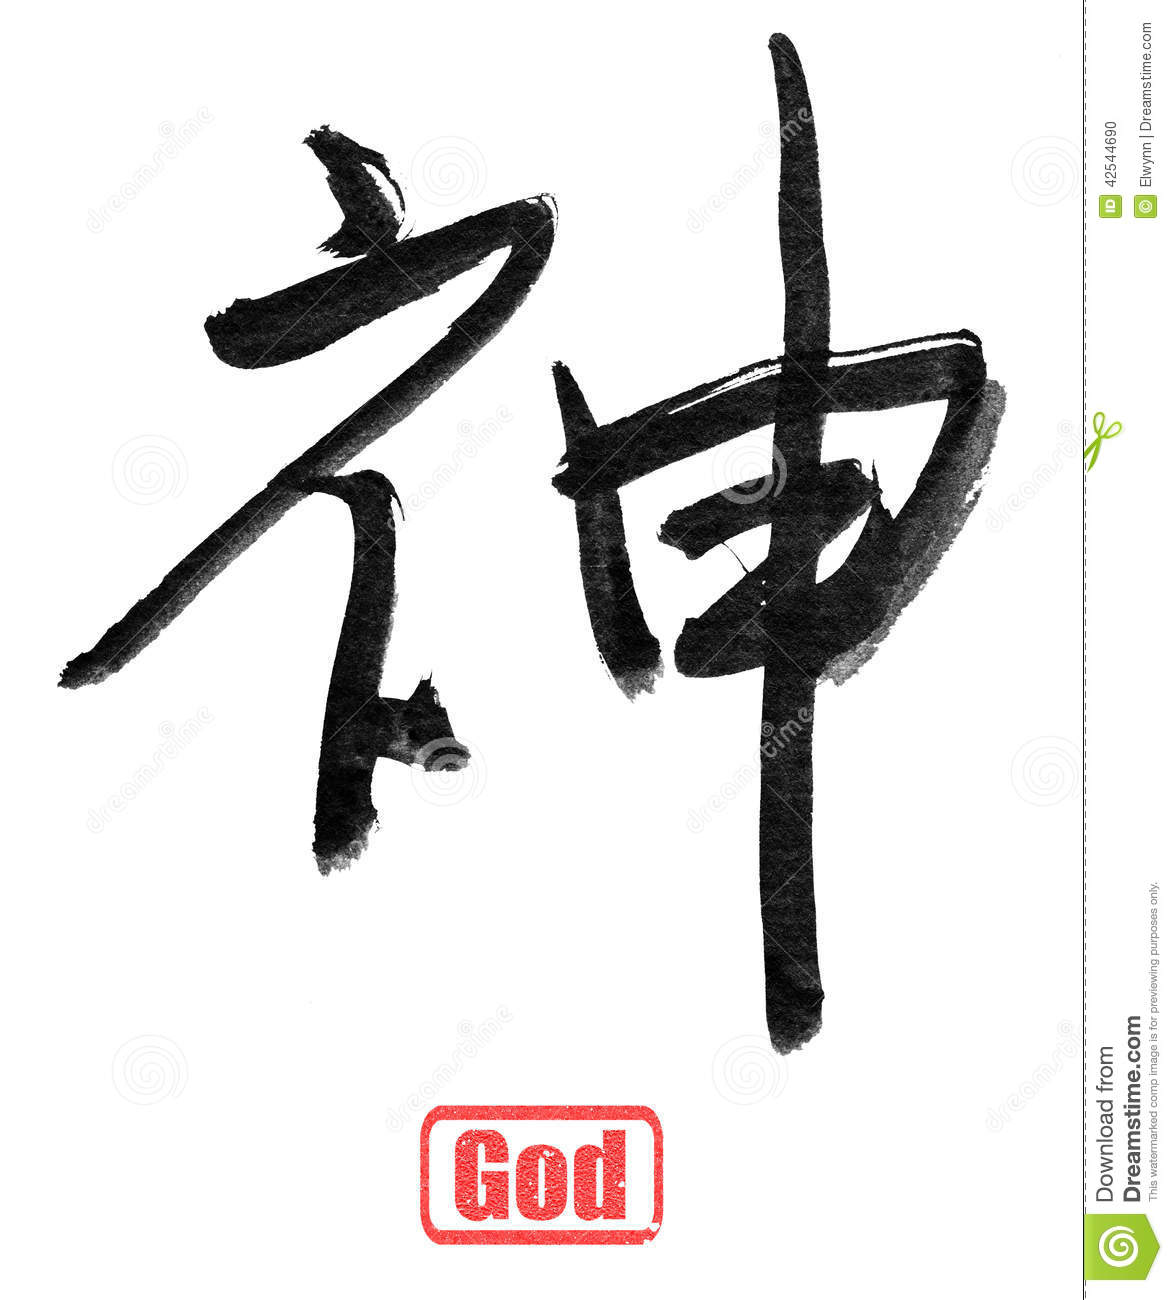 God traditional chinese calligraphy stock illustration